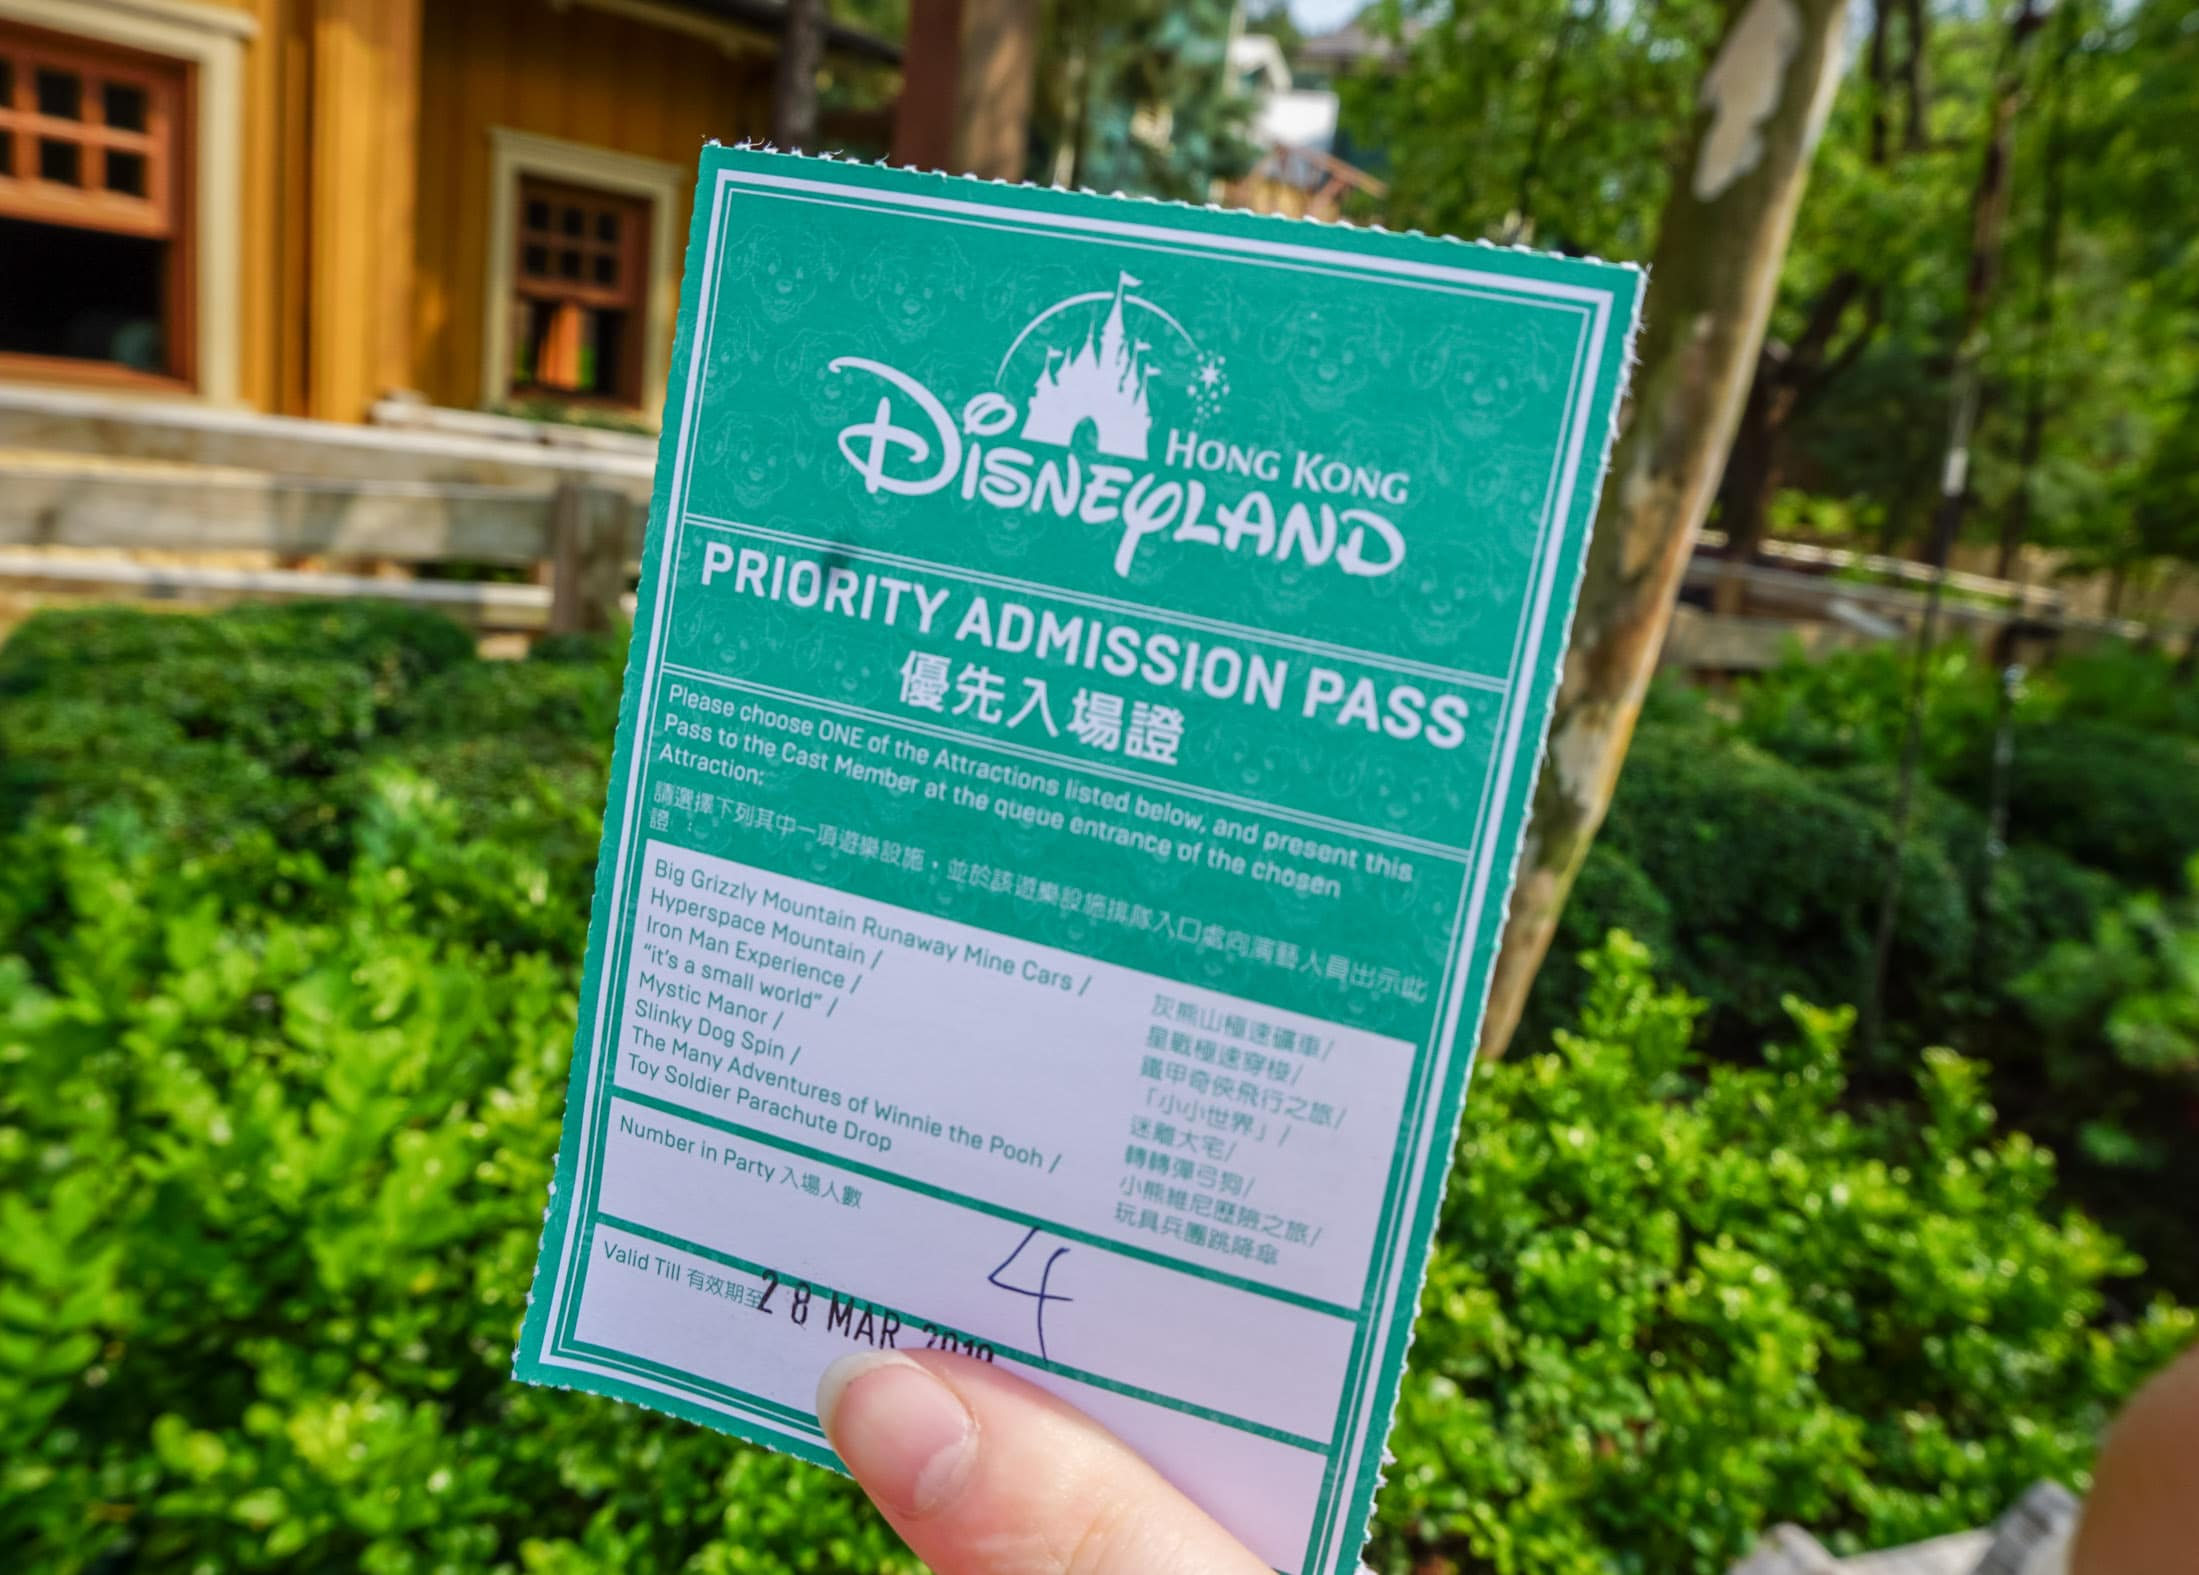 Priority Admission Pass at Hong Kong Disneyland